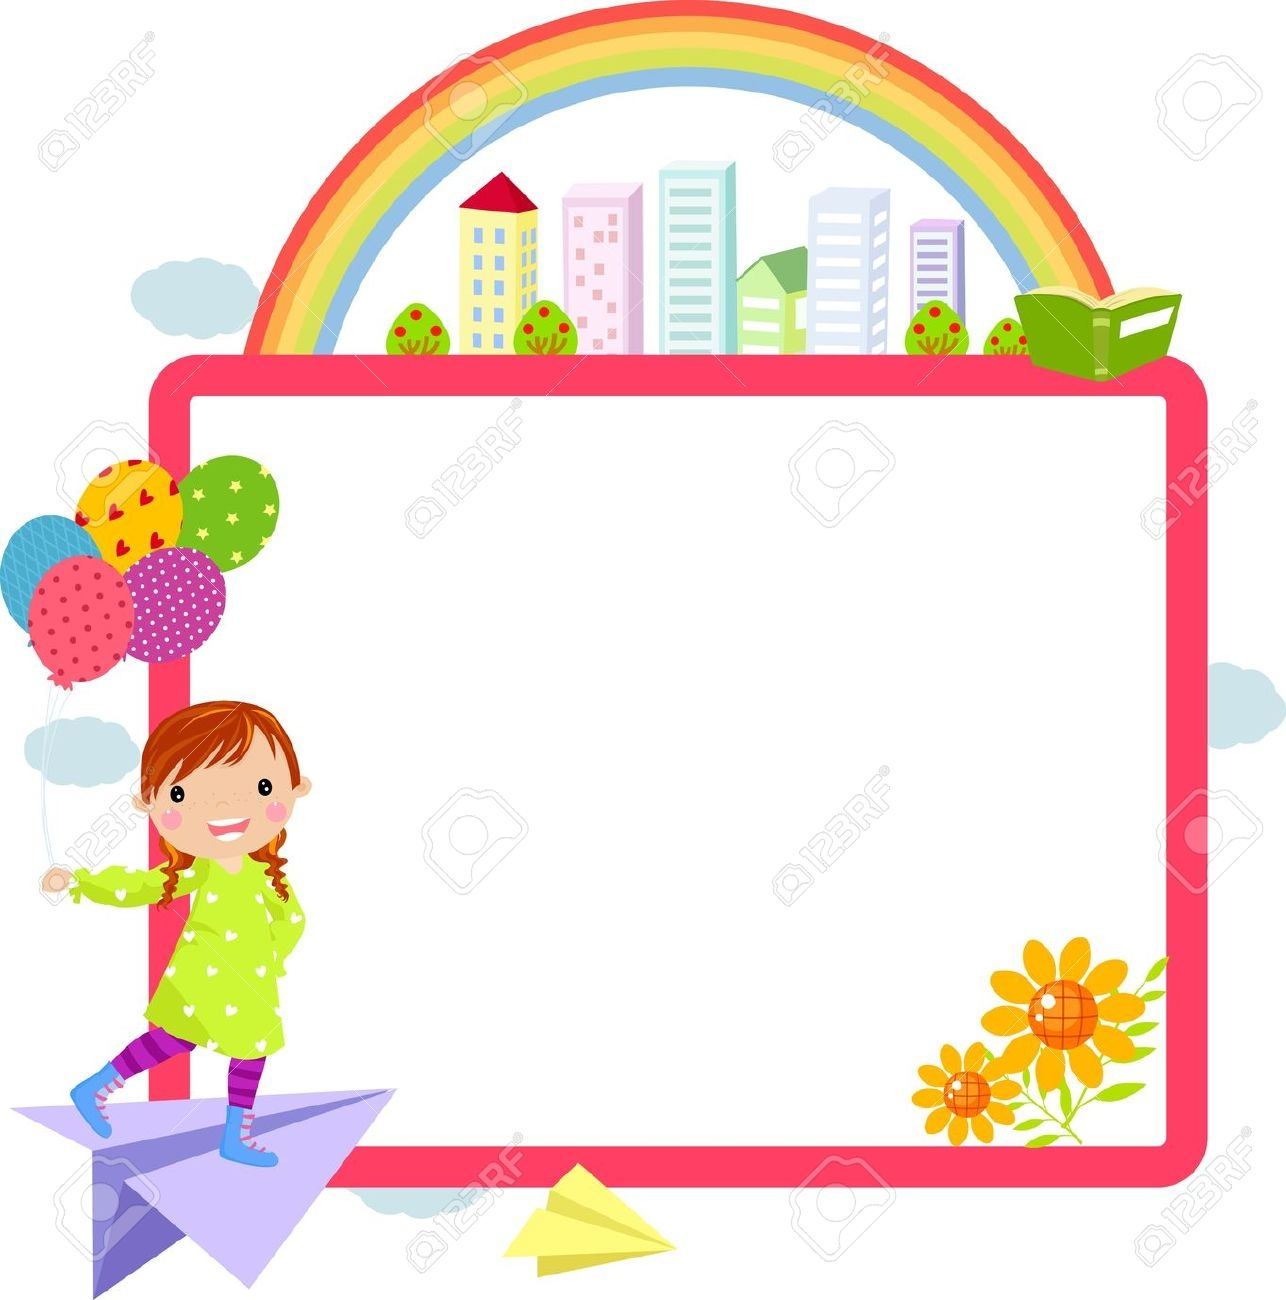 Rainbow Border Clipart | Free download best Rainbow Border Clipart on ClipArtMag.com